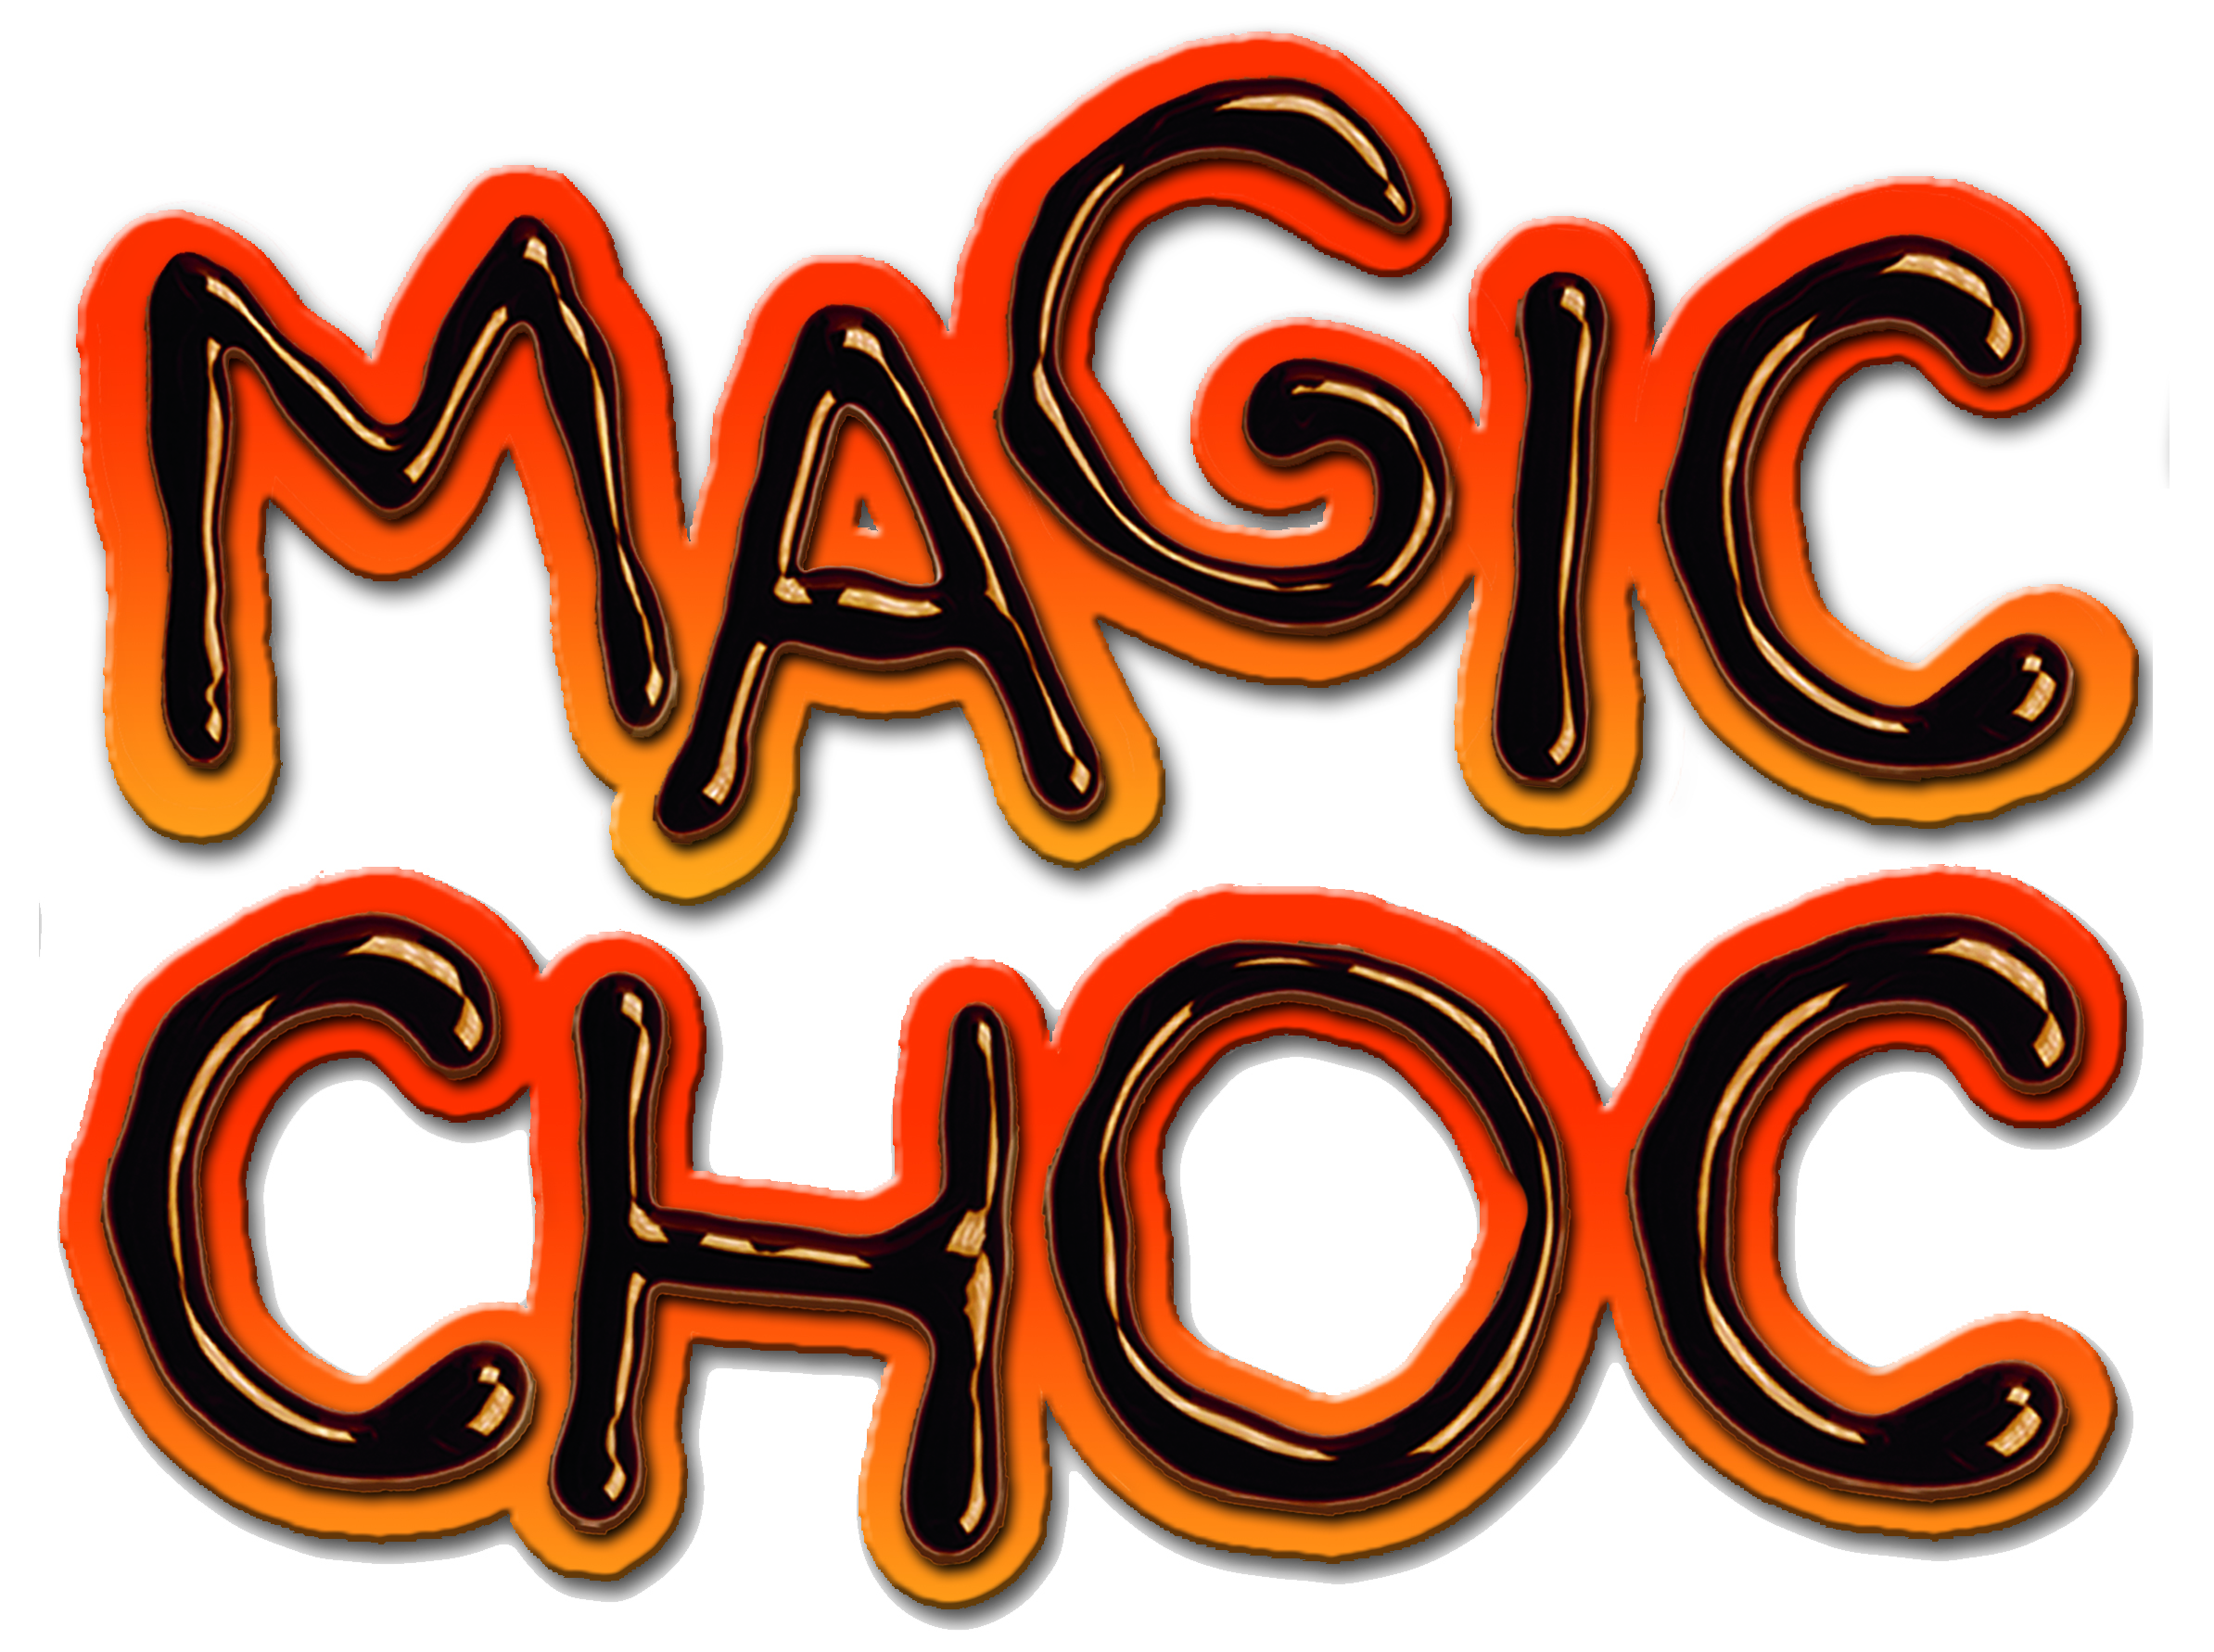 Magic 2013 Logo File:magic Choc Logo.jpg